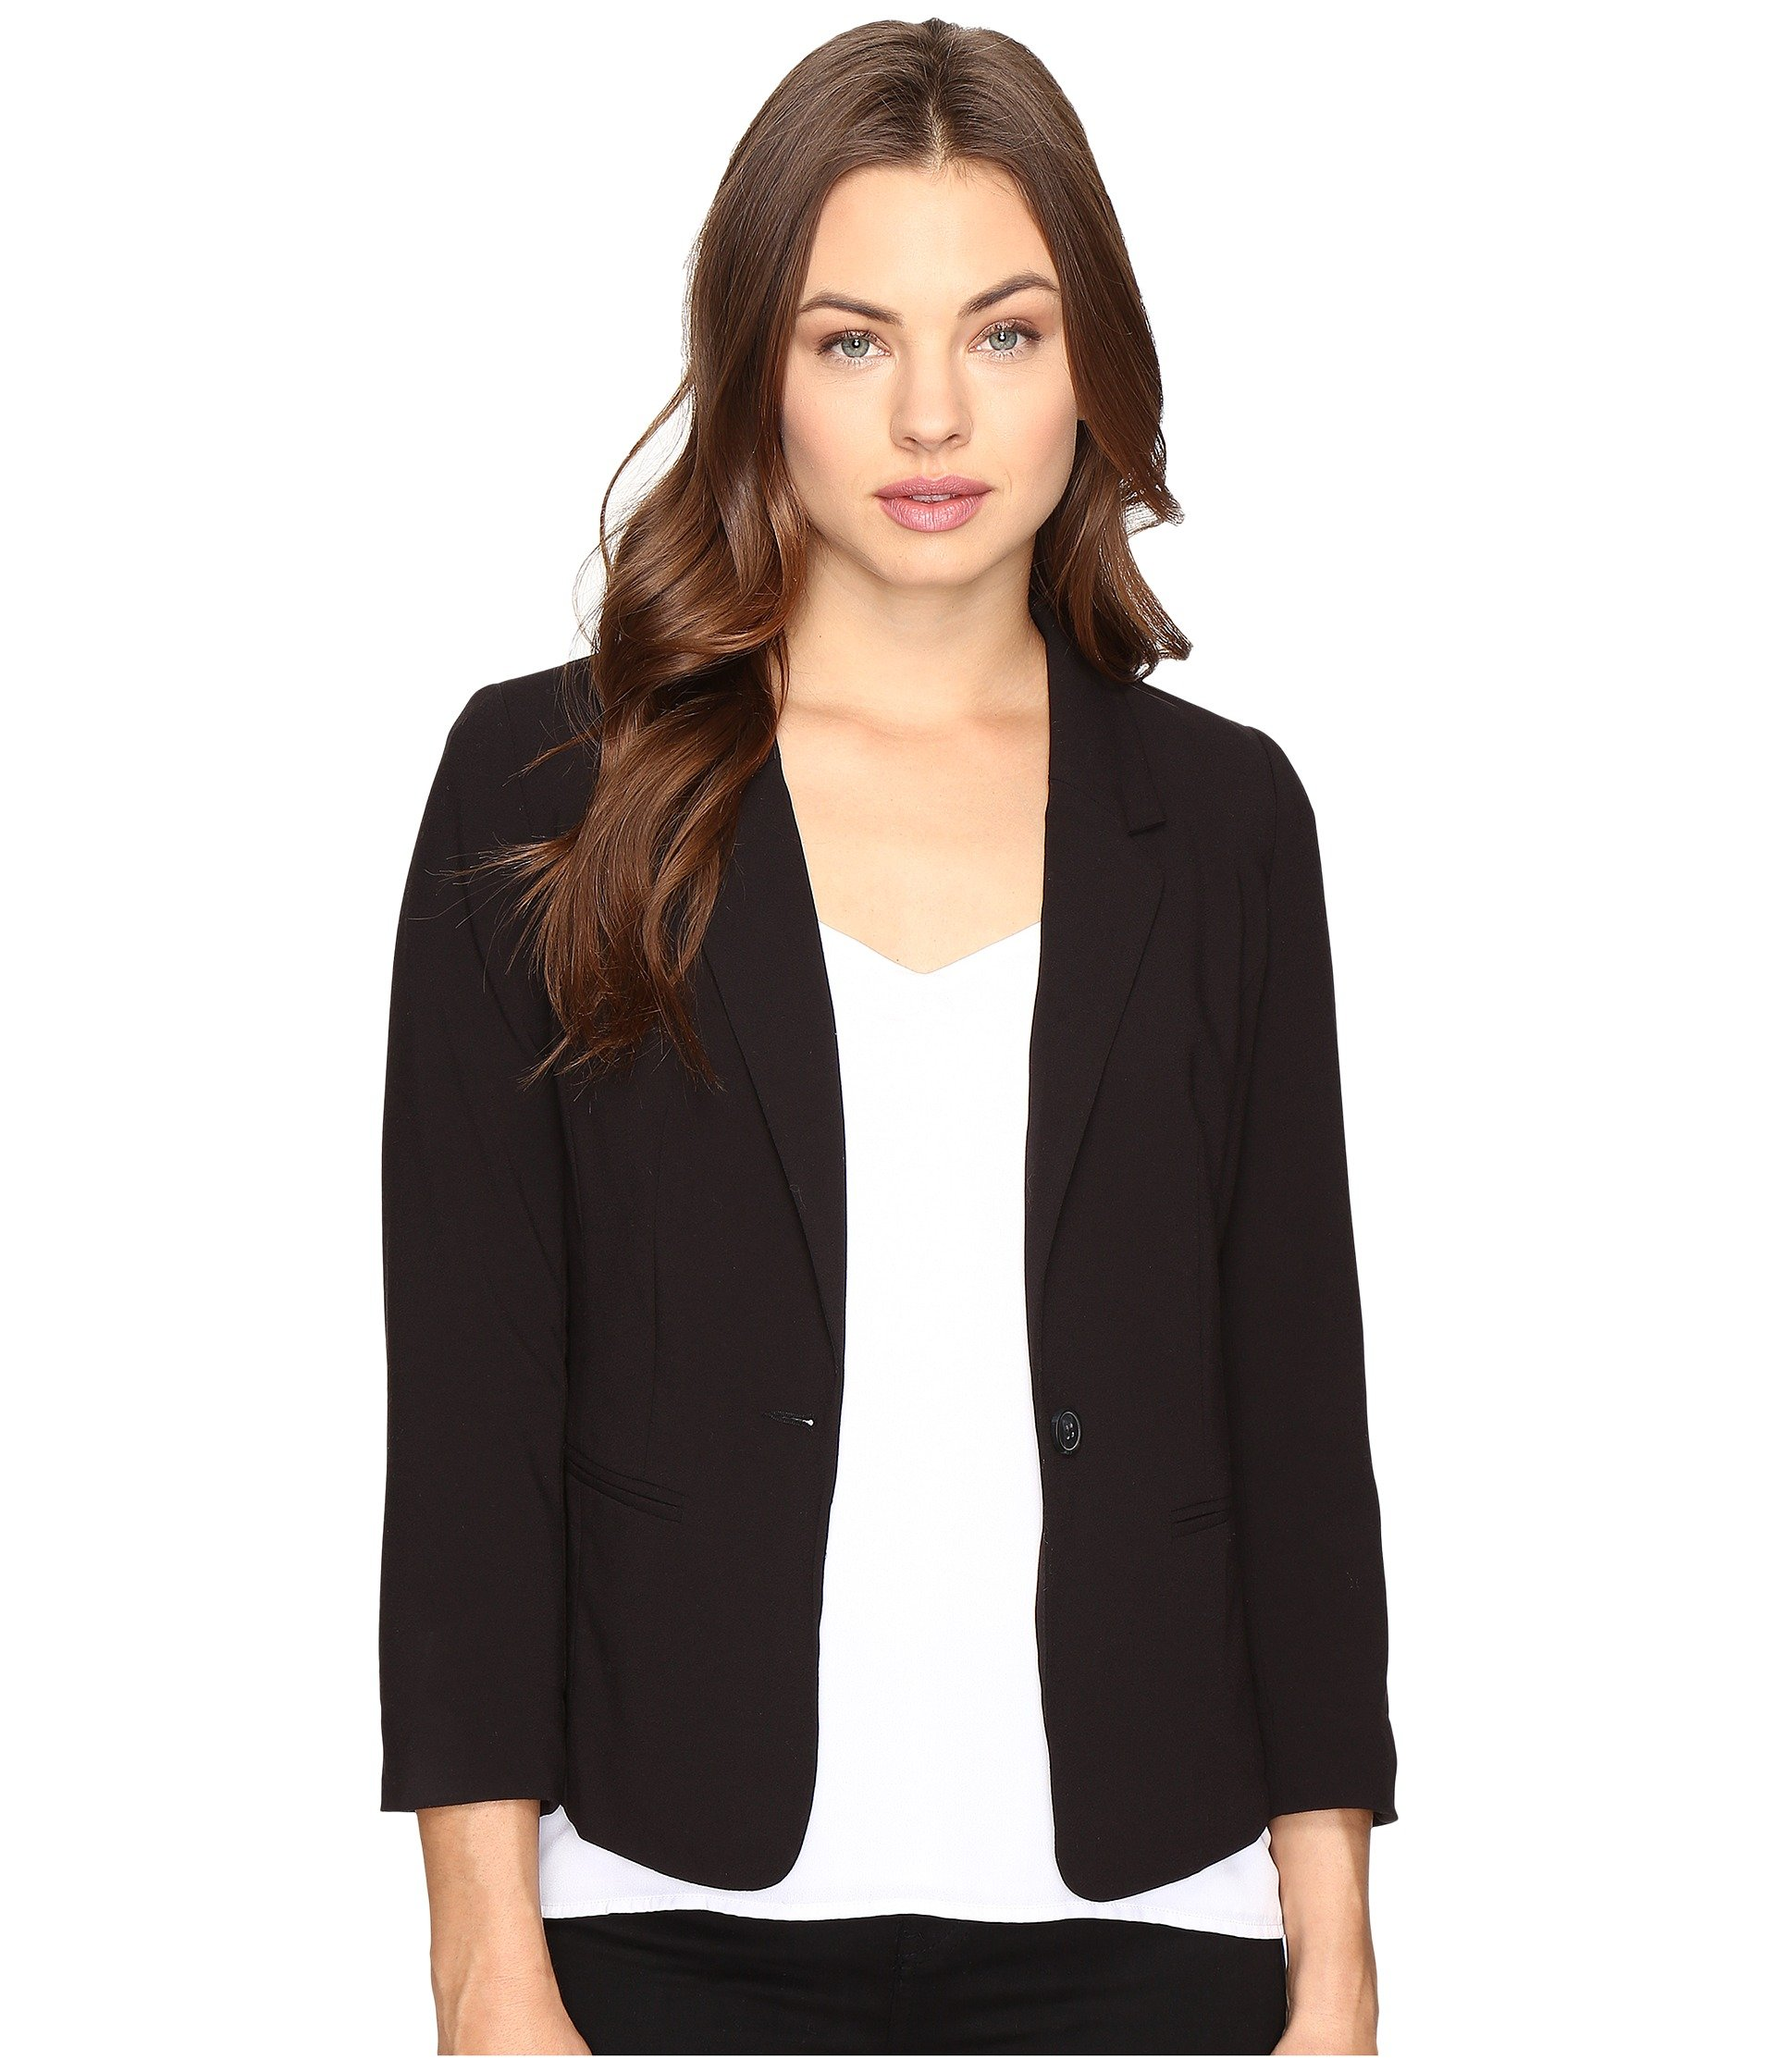 ccce9e9f73 Women s Office   Career Clothing + FREE SHIPPING